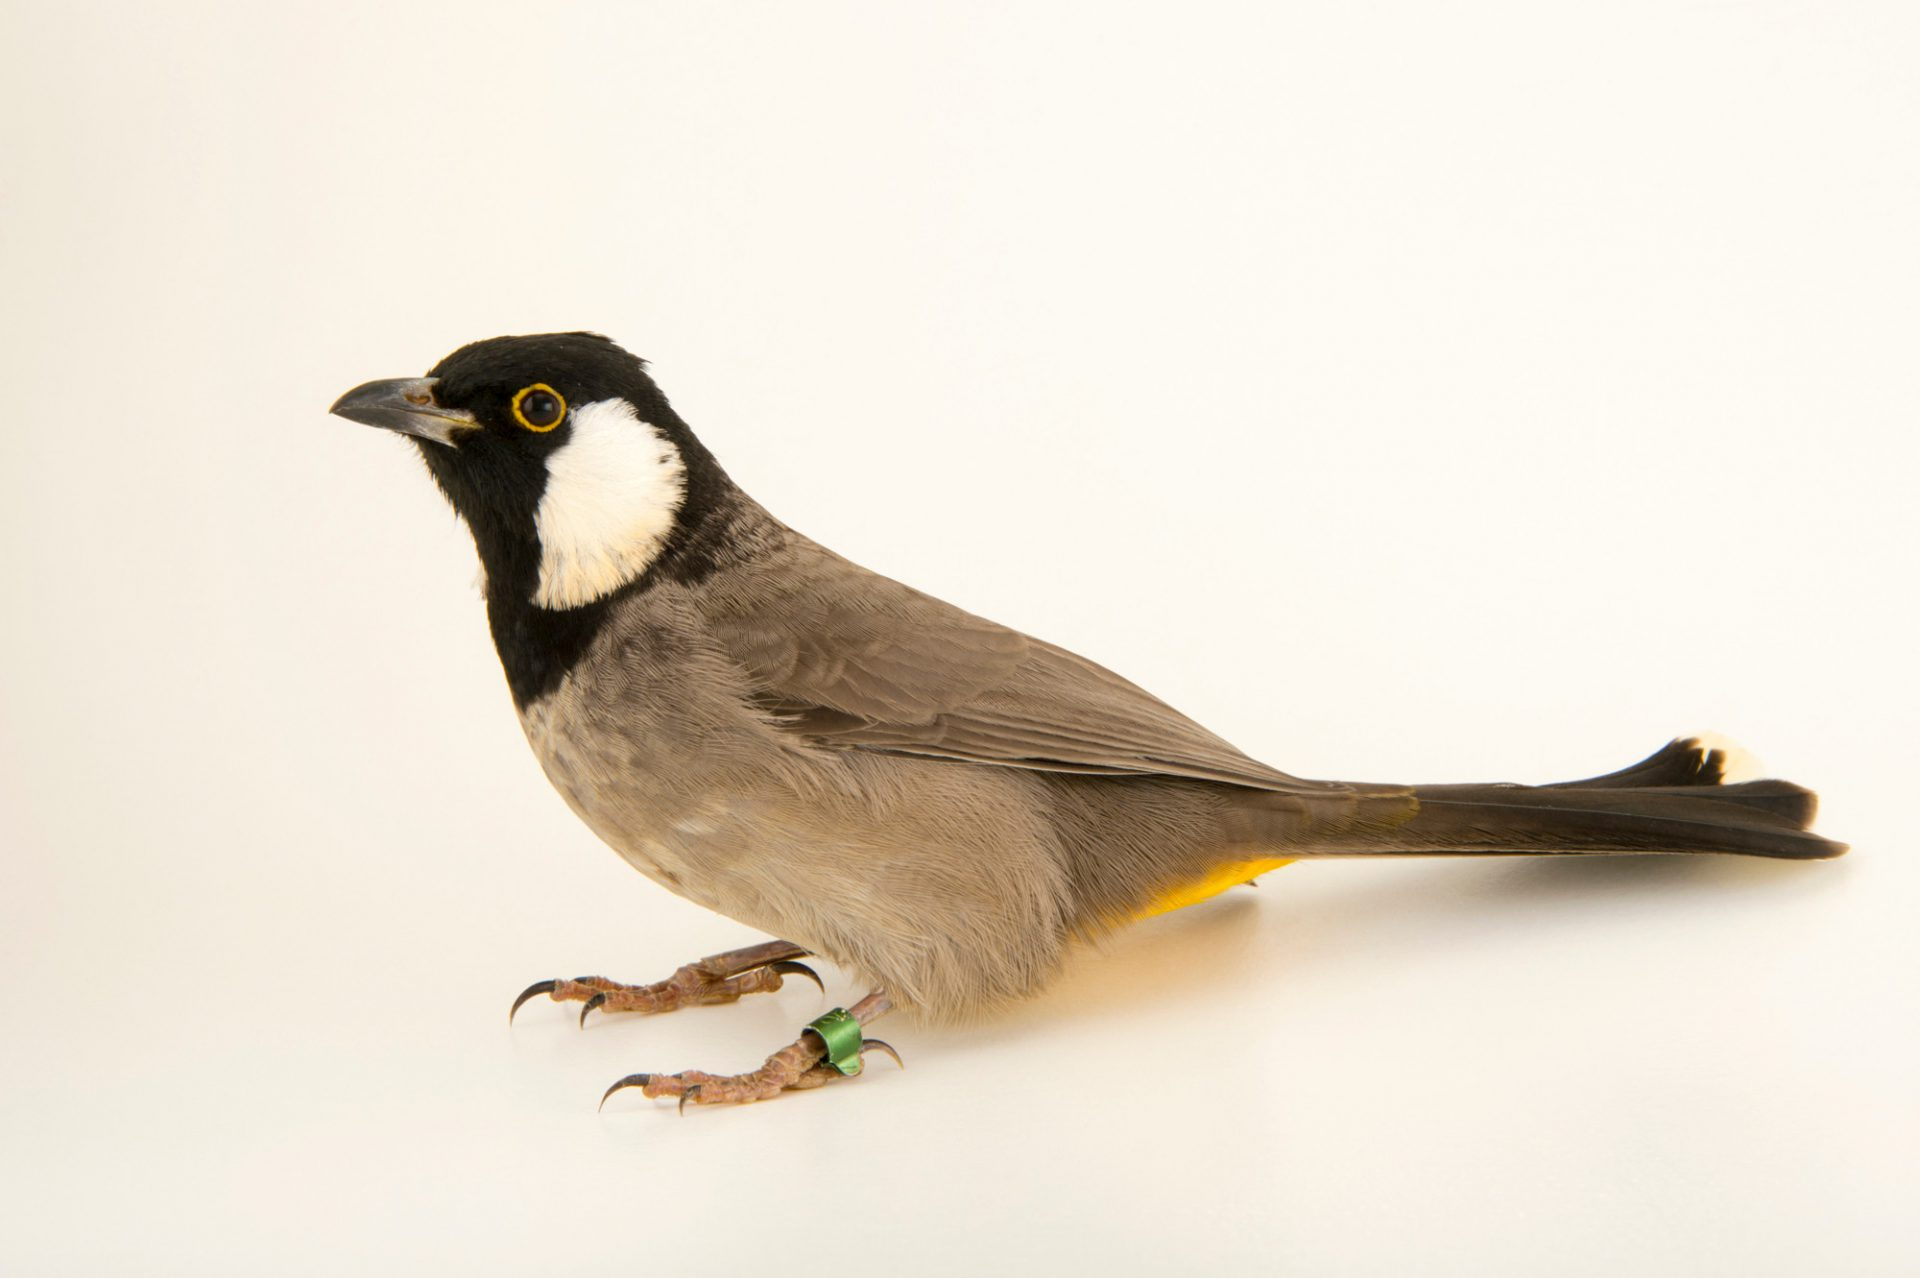 Photo: White eared bulbul (Pycnonotus leucotis mesopotamia) at the Plzen Zoo in the Czech Republic.